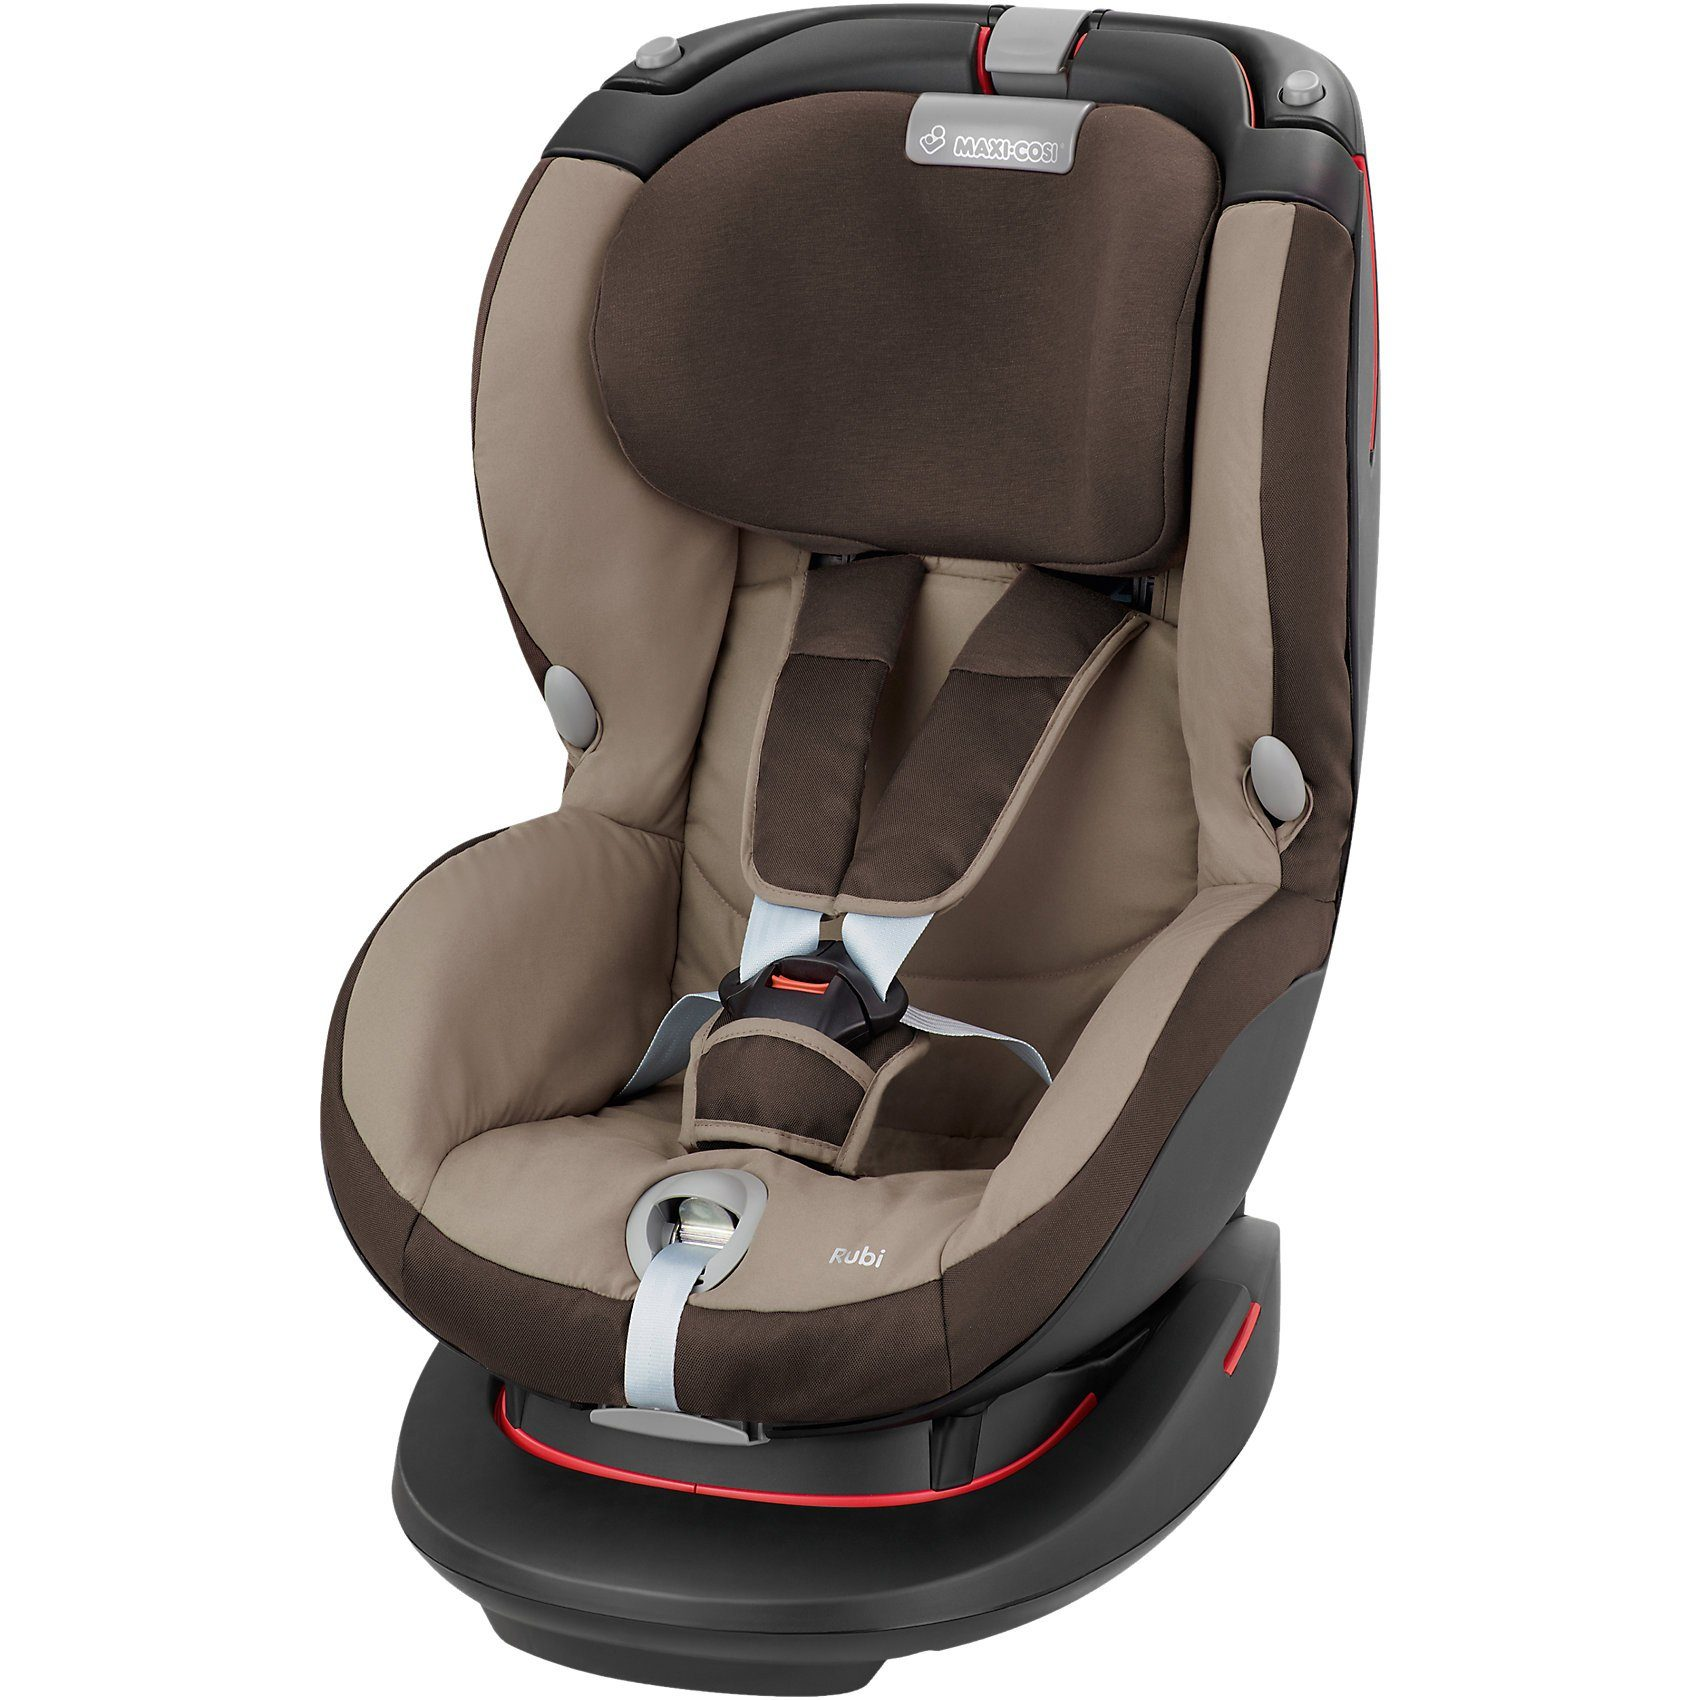 Maxi-Cosi Auto-Kindersitz Rubi XP, walnut brown, 2016